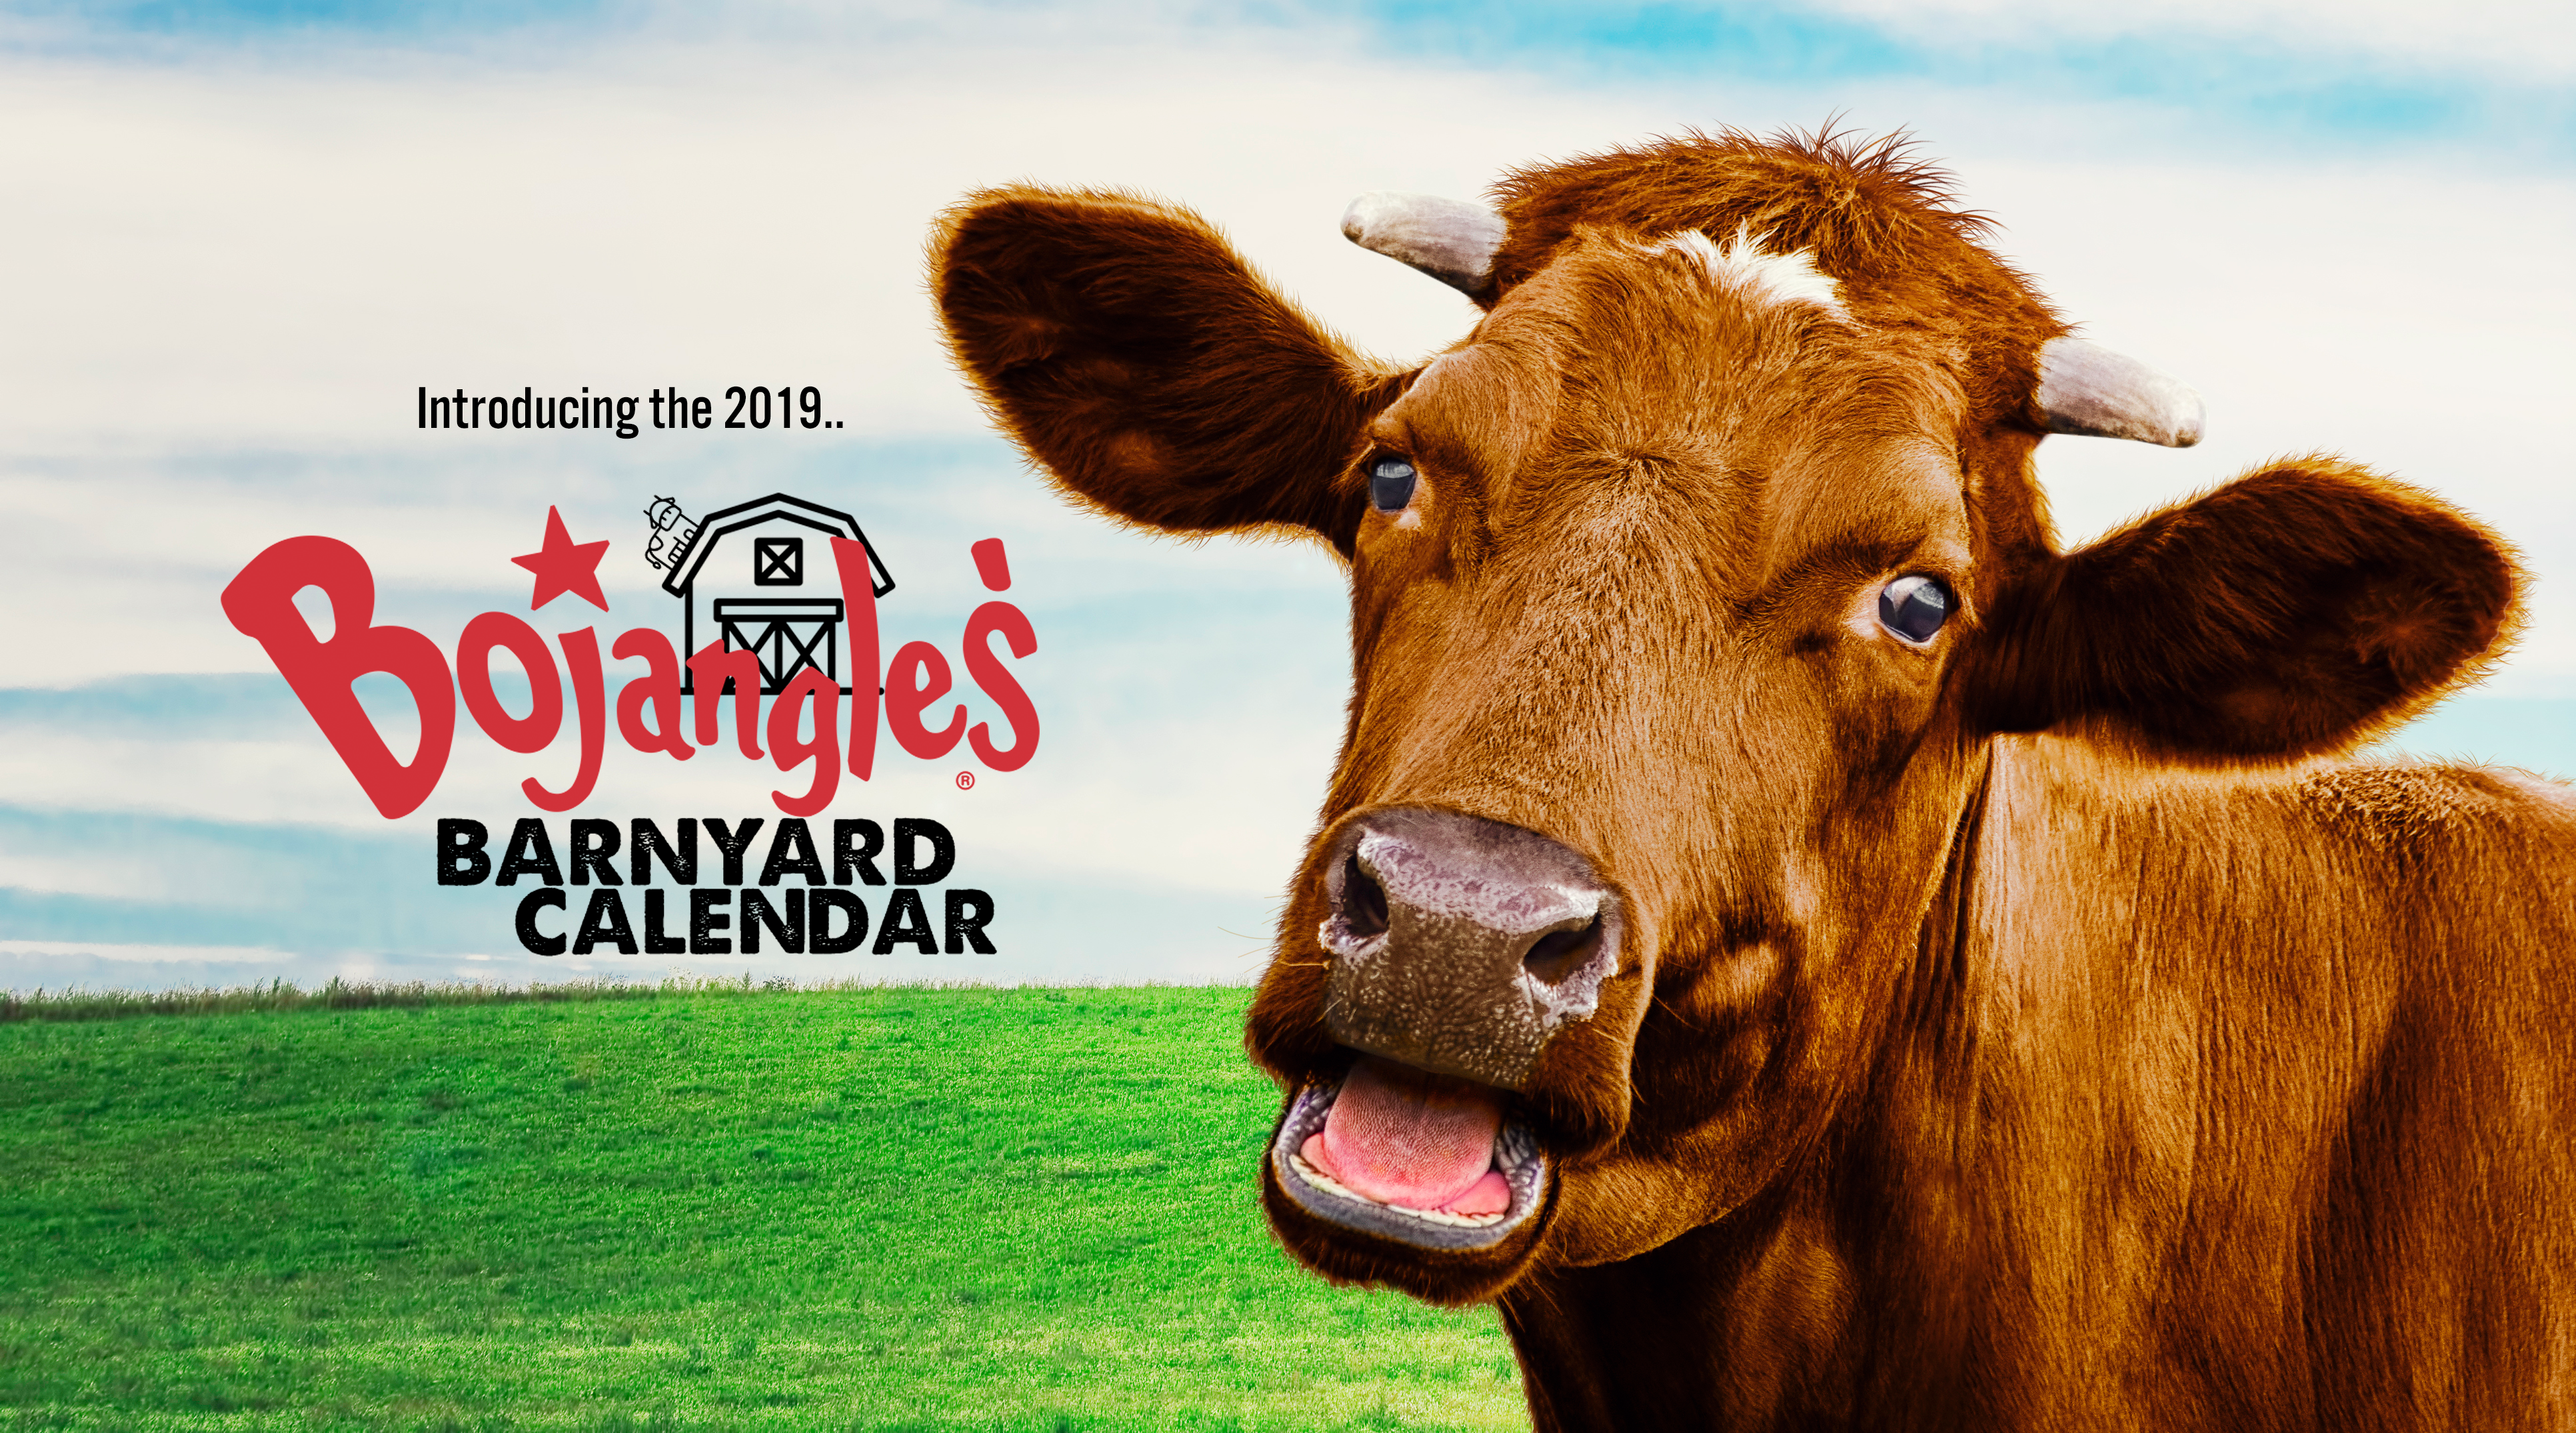 photo relating to Bojangles Printable Coupons referred to as Bojangles Barnyard Calendar